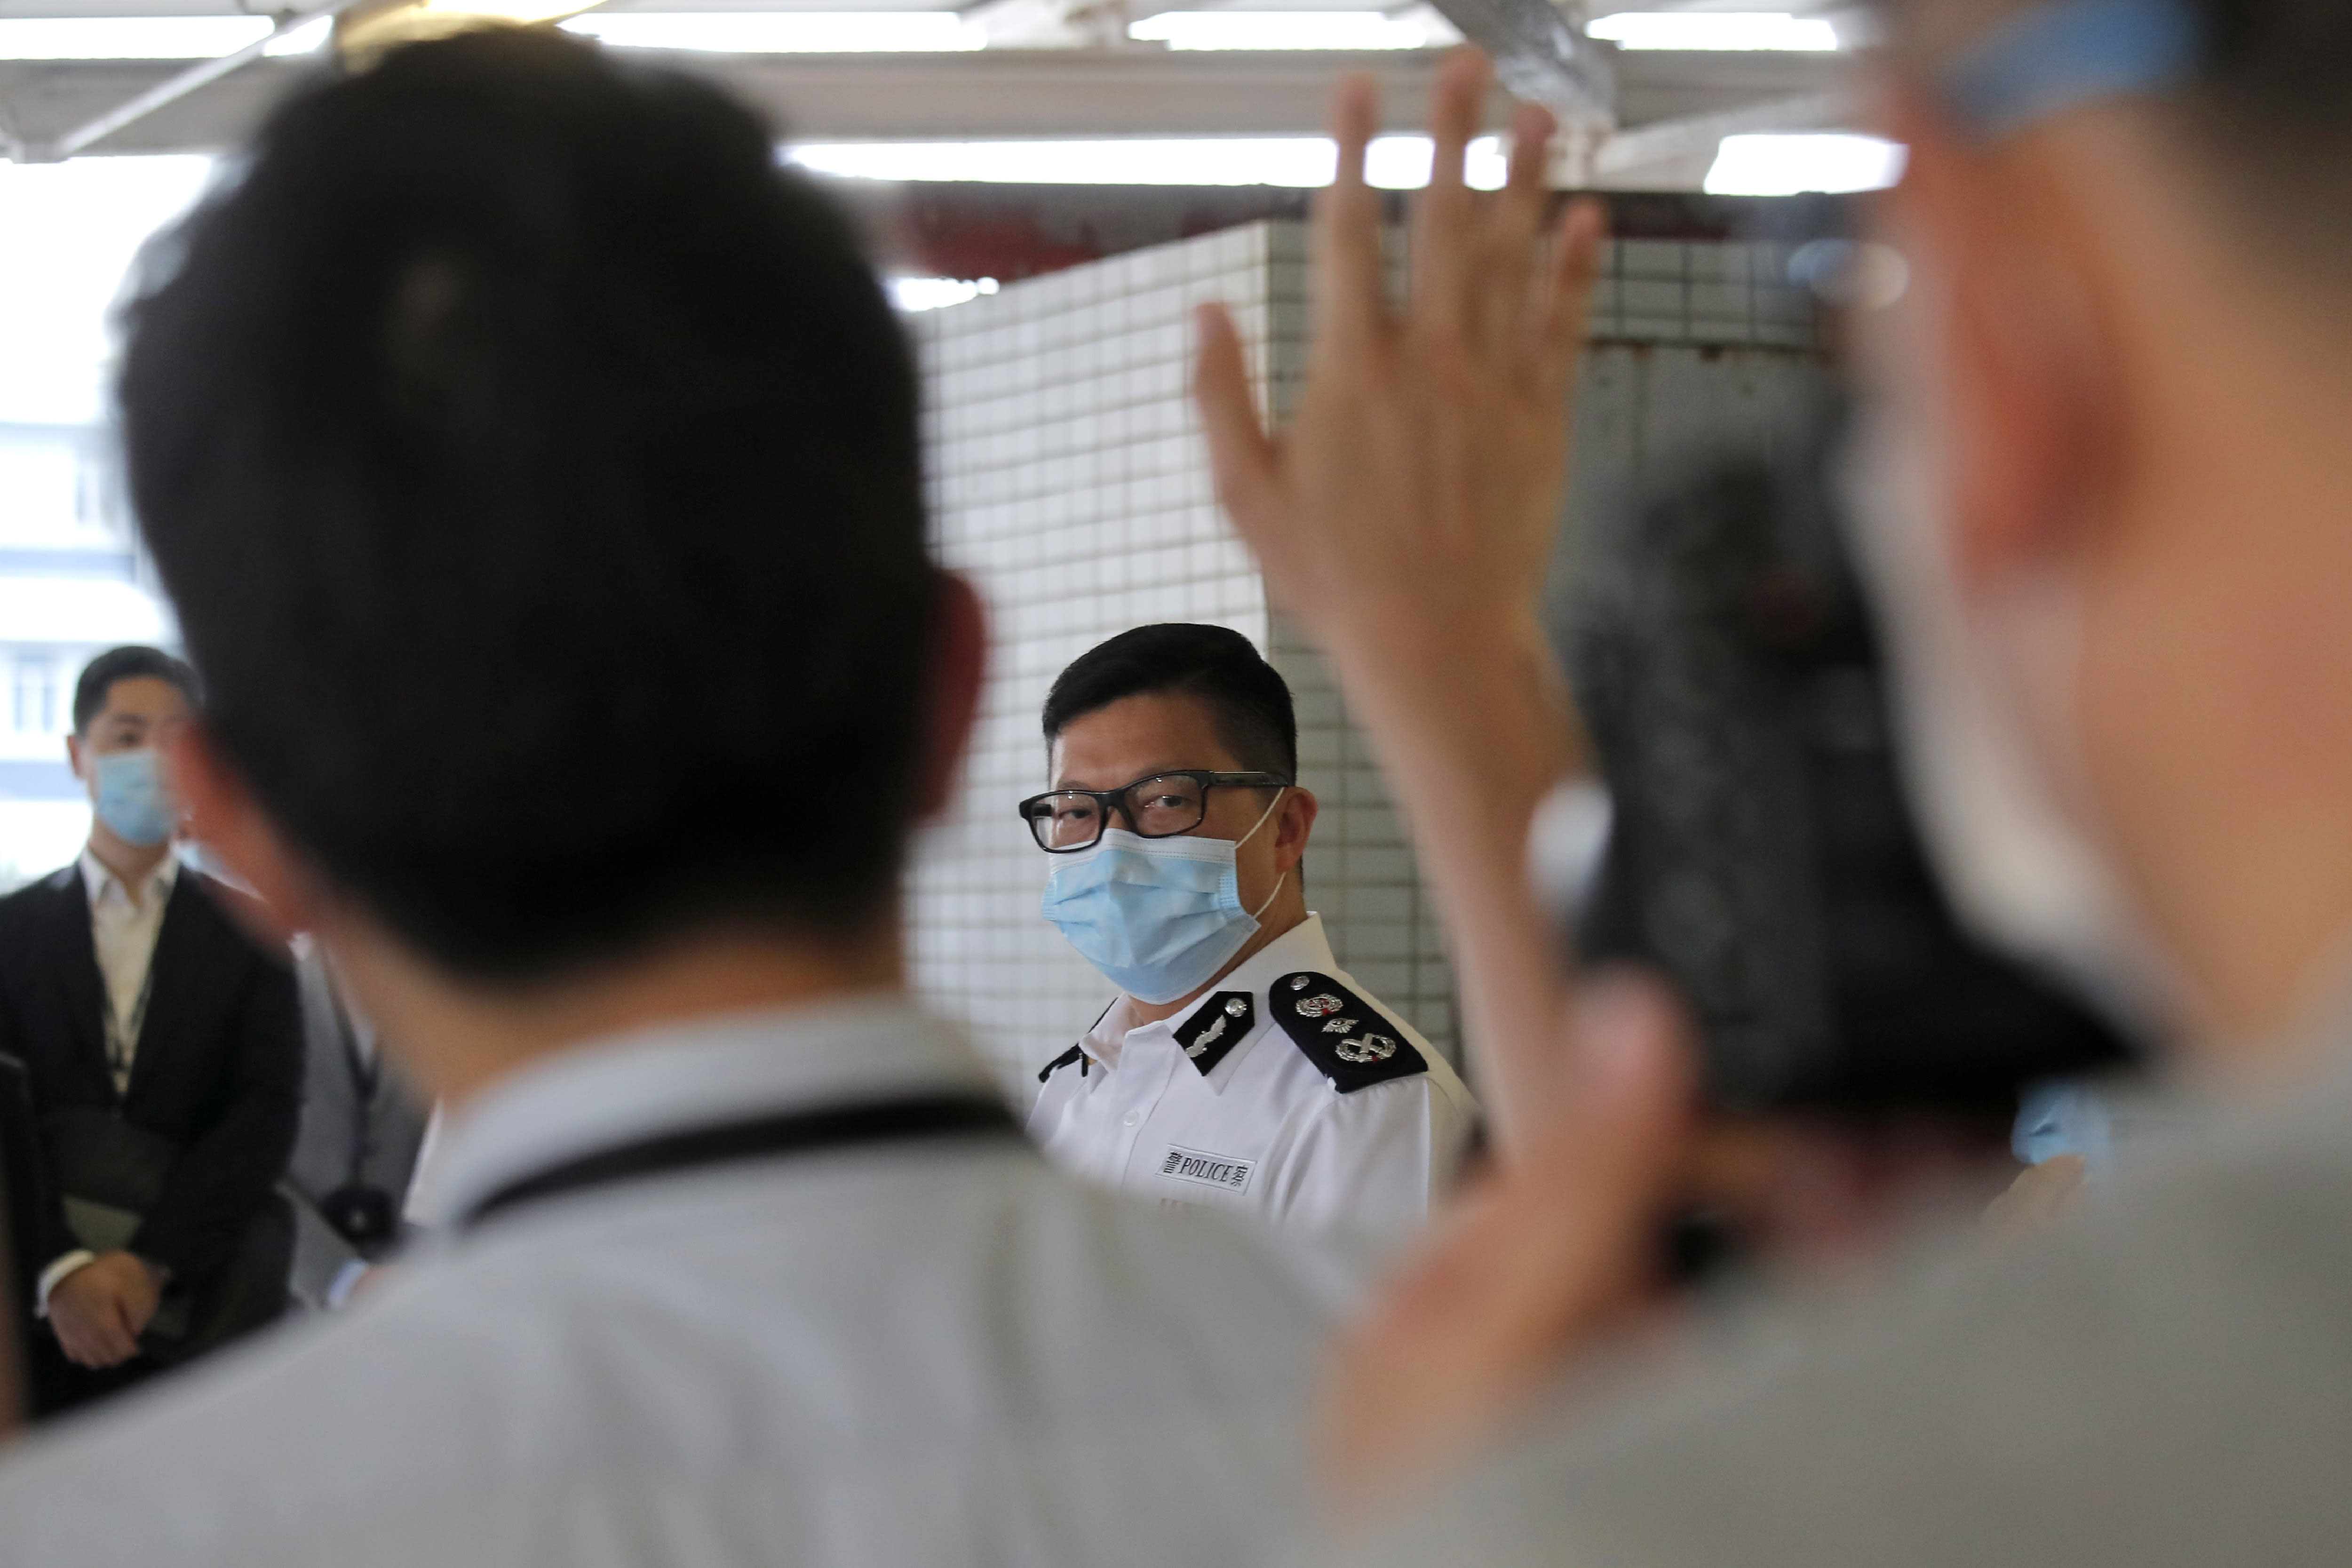 The Commissioner of Police Chris Tang Ping-keung speaks to the media at the Police Marine Regional Headquarters in Hong Kong, Thursday, Aug. 27, 2020. Chinese authorities have arrested at least 10 people, including a Hong Kong pro-democracy activist, after its coast guard intercepted a speedboat suspected of illegally crossing the border waters off the coast of the southern province of Guangdong. (AP Photo/Kin Cheung)